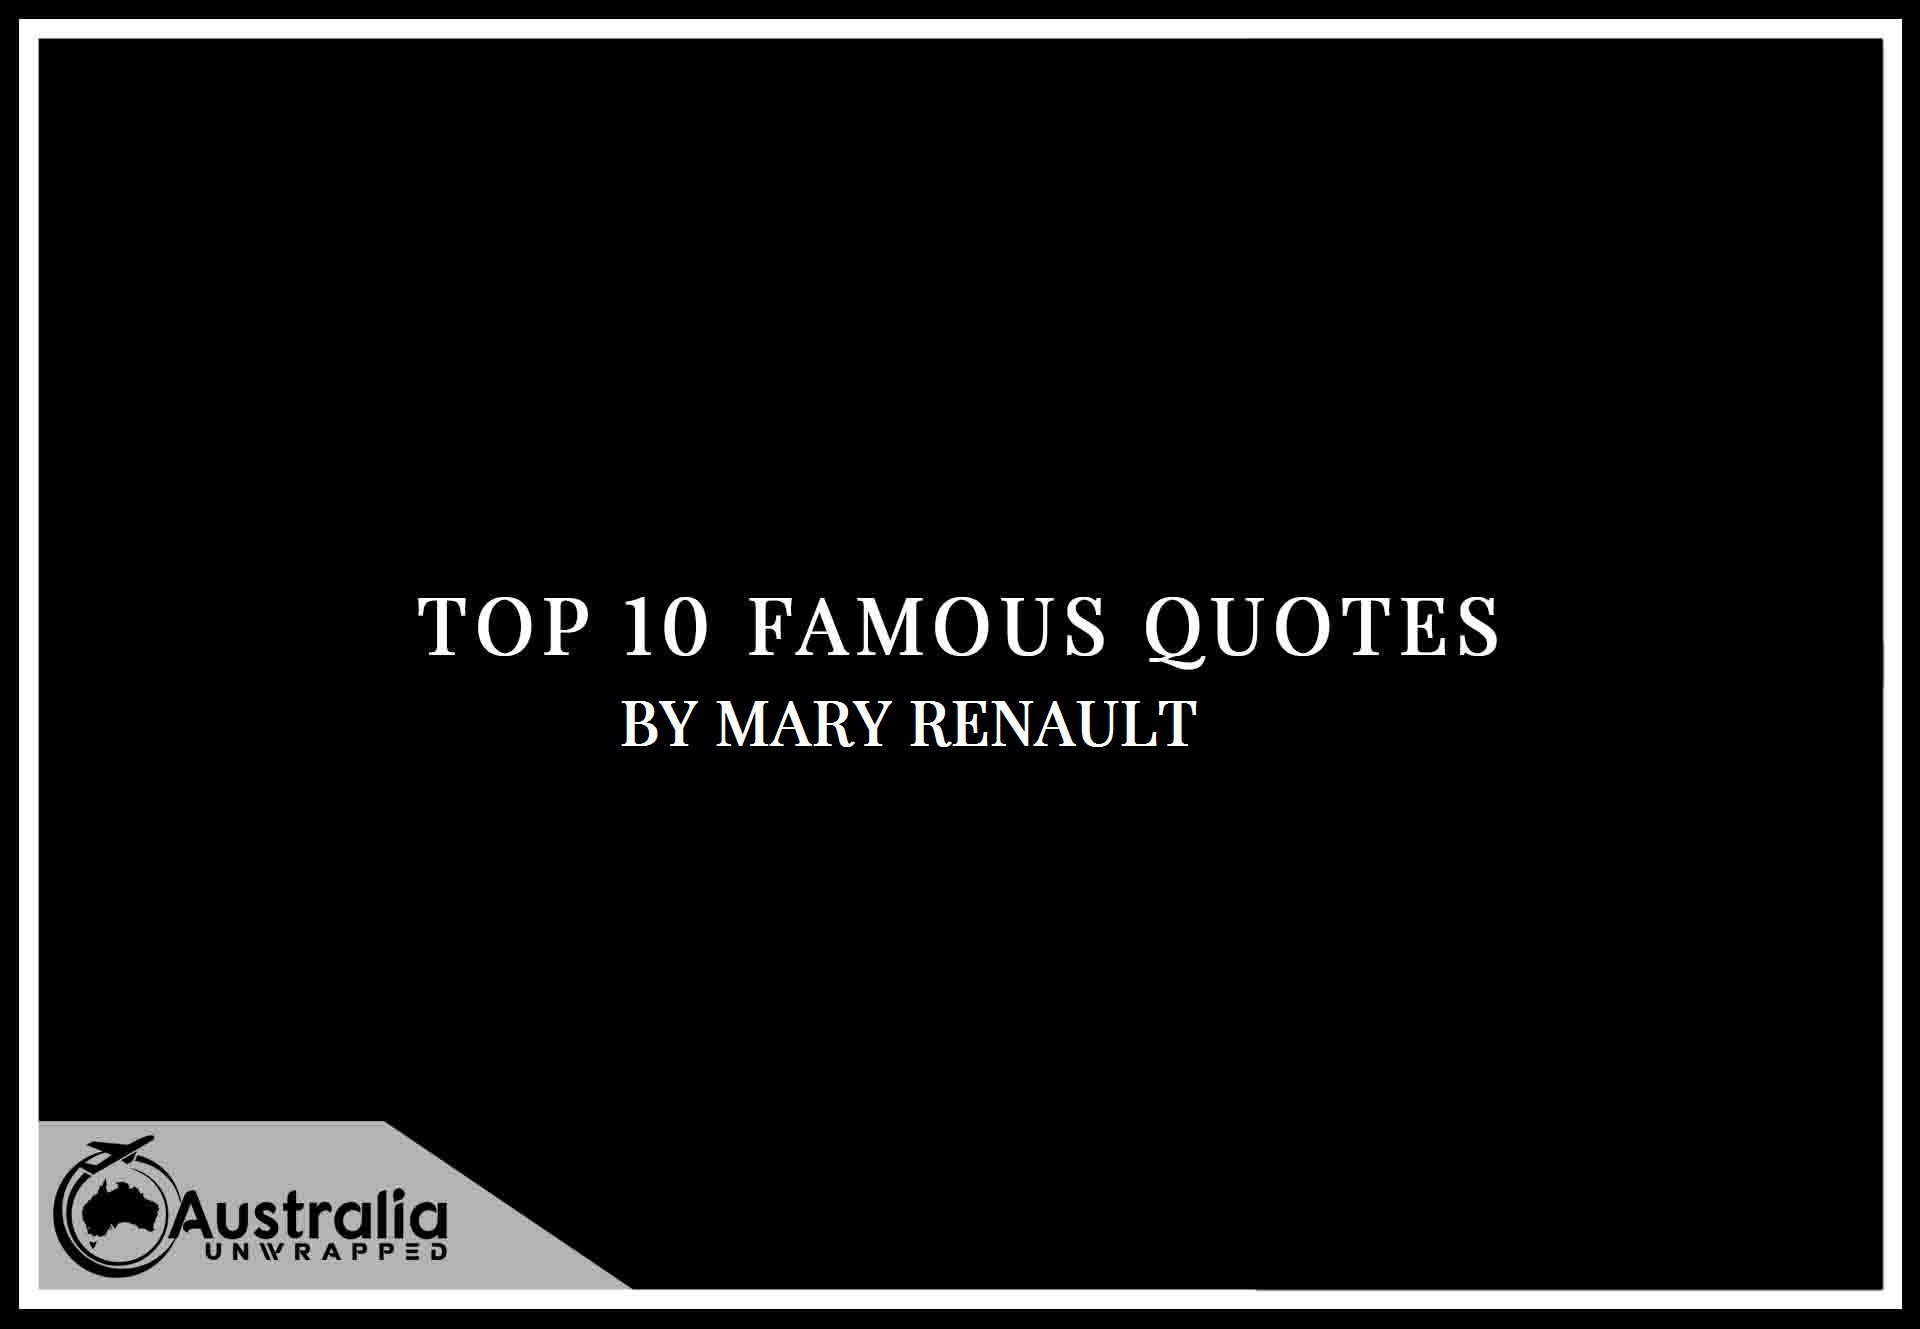 Mary Renault's Top 10 Popular and Famous Quotes